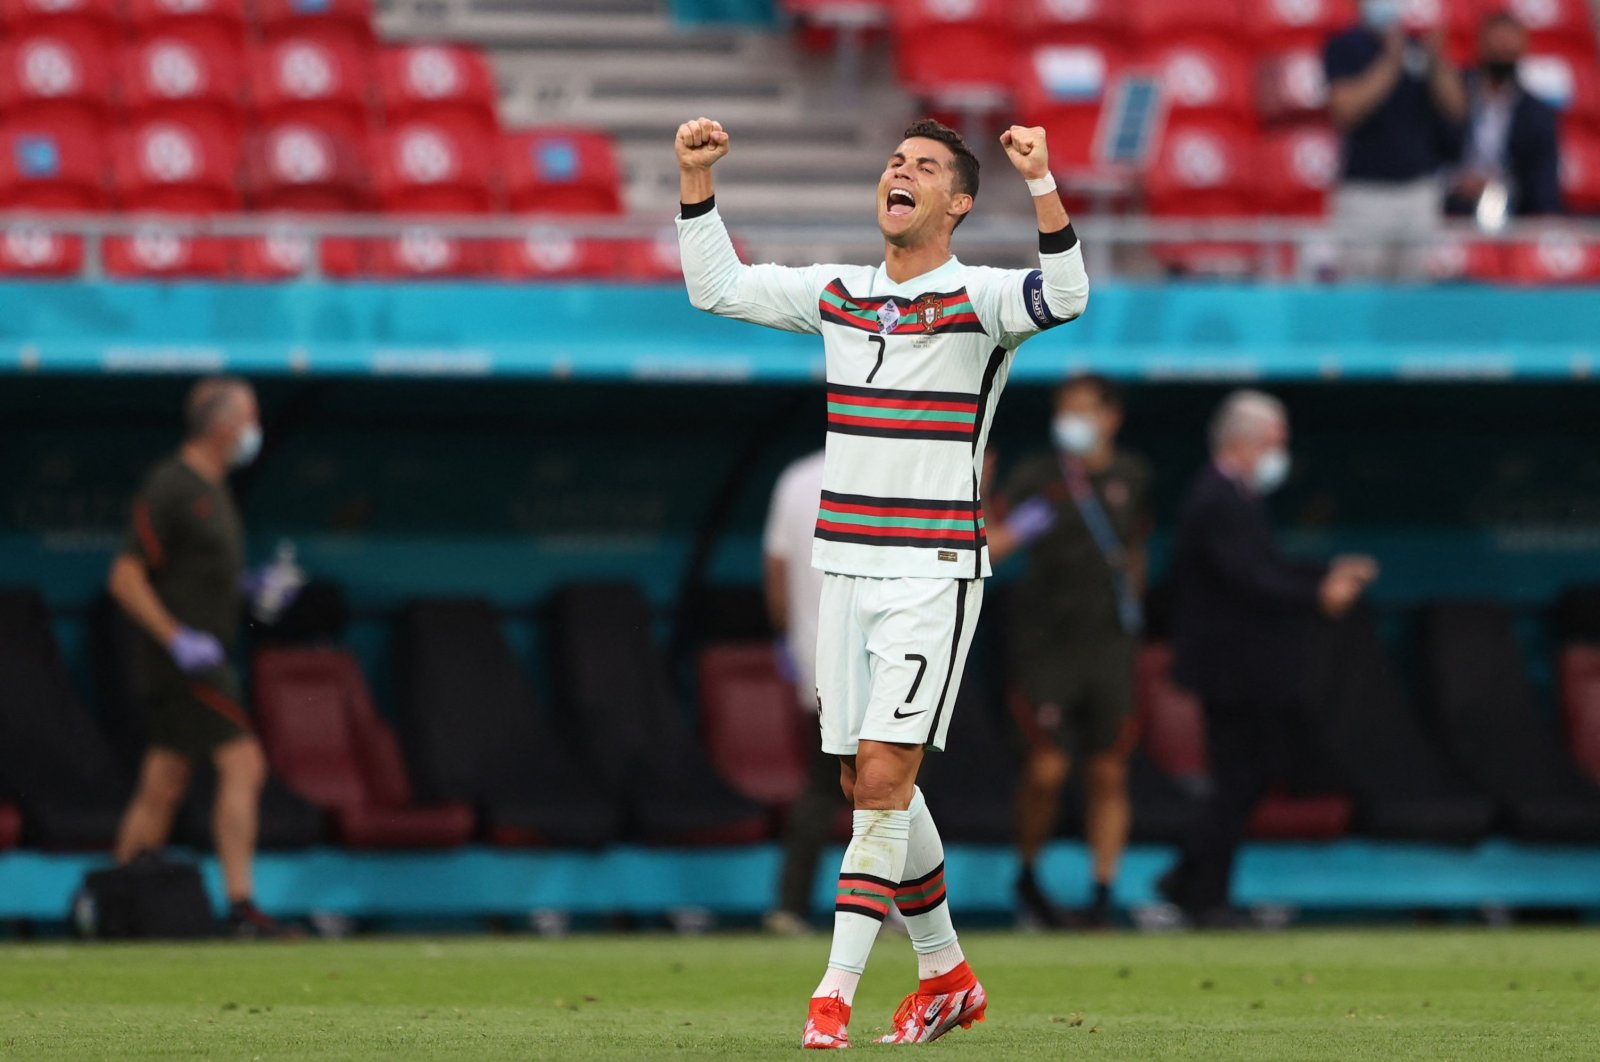 Cristiano Ronaldo celebrates at the end of the EURO 2020 match between Portugal and Hungary, in Budapest, Hungary, June 15, 2021. (AFP PHOTO)